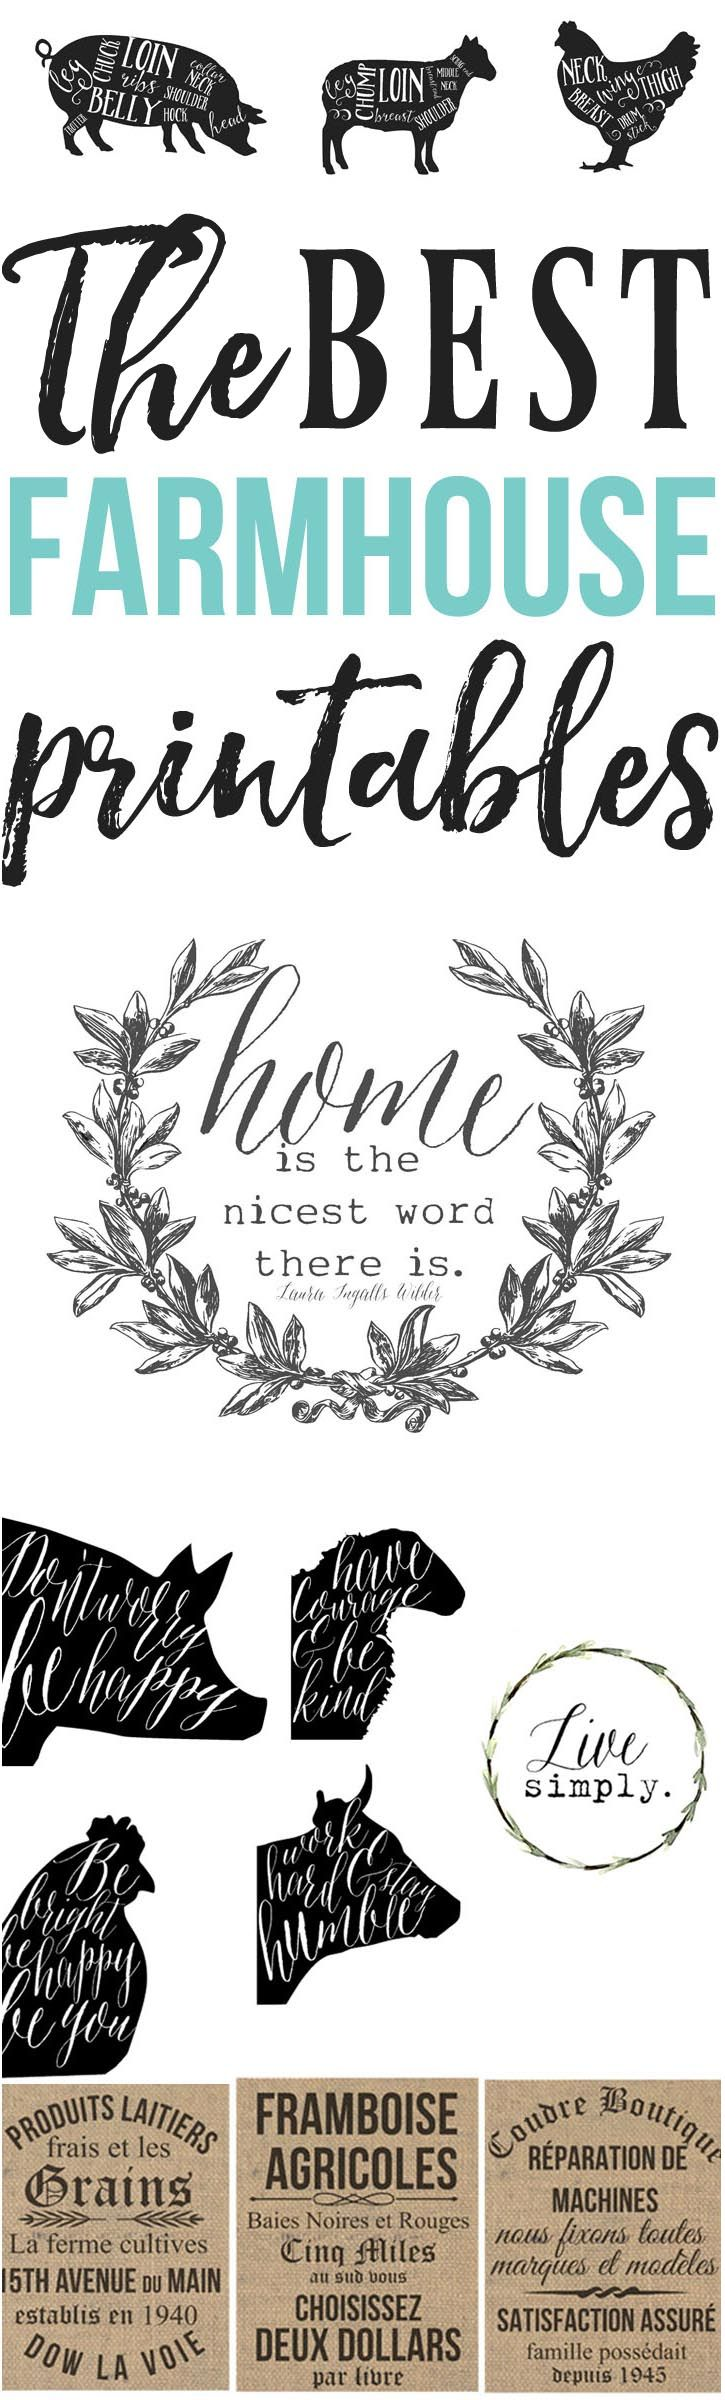 Farmhouse Printables- farmhouse inspired printables for a budget worthy room makeover  farmhouse printables, farmhouse decor, farmhouse inspired, farmhouse living room, farmhouse bathroom, farmhouse decorating on a budget, farmhouse inspiration, farmhouse kitchen, farmhouse decorating ideas.